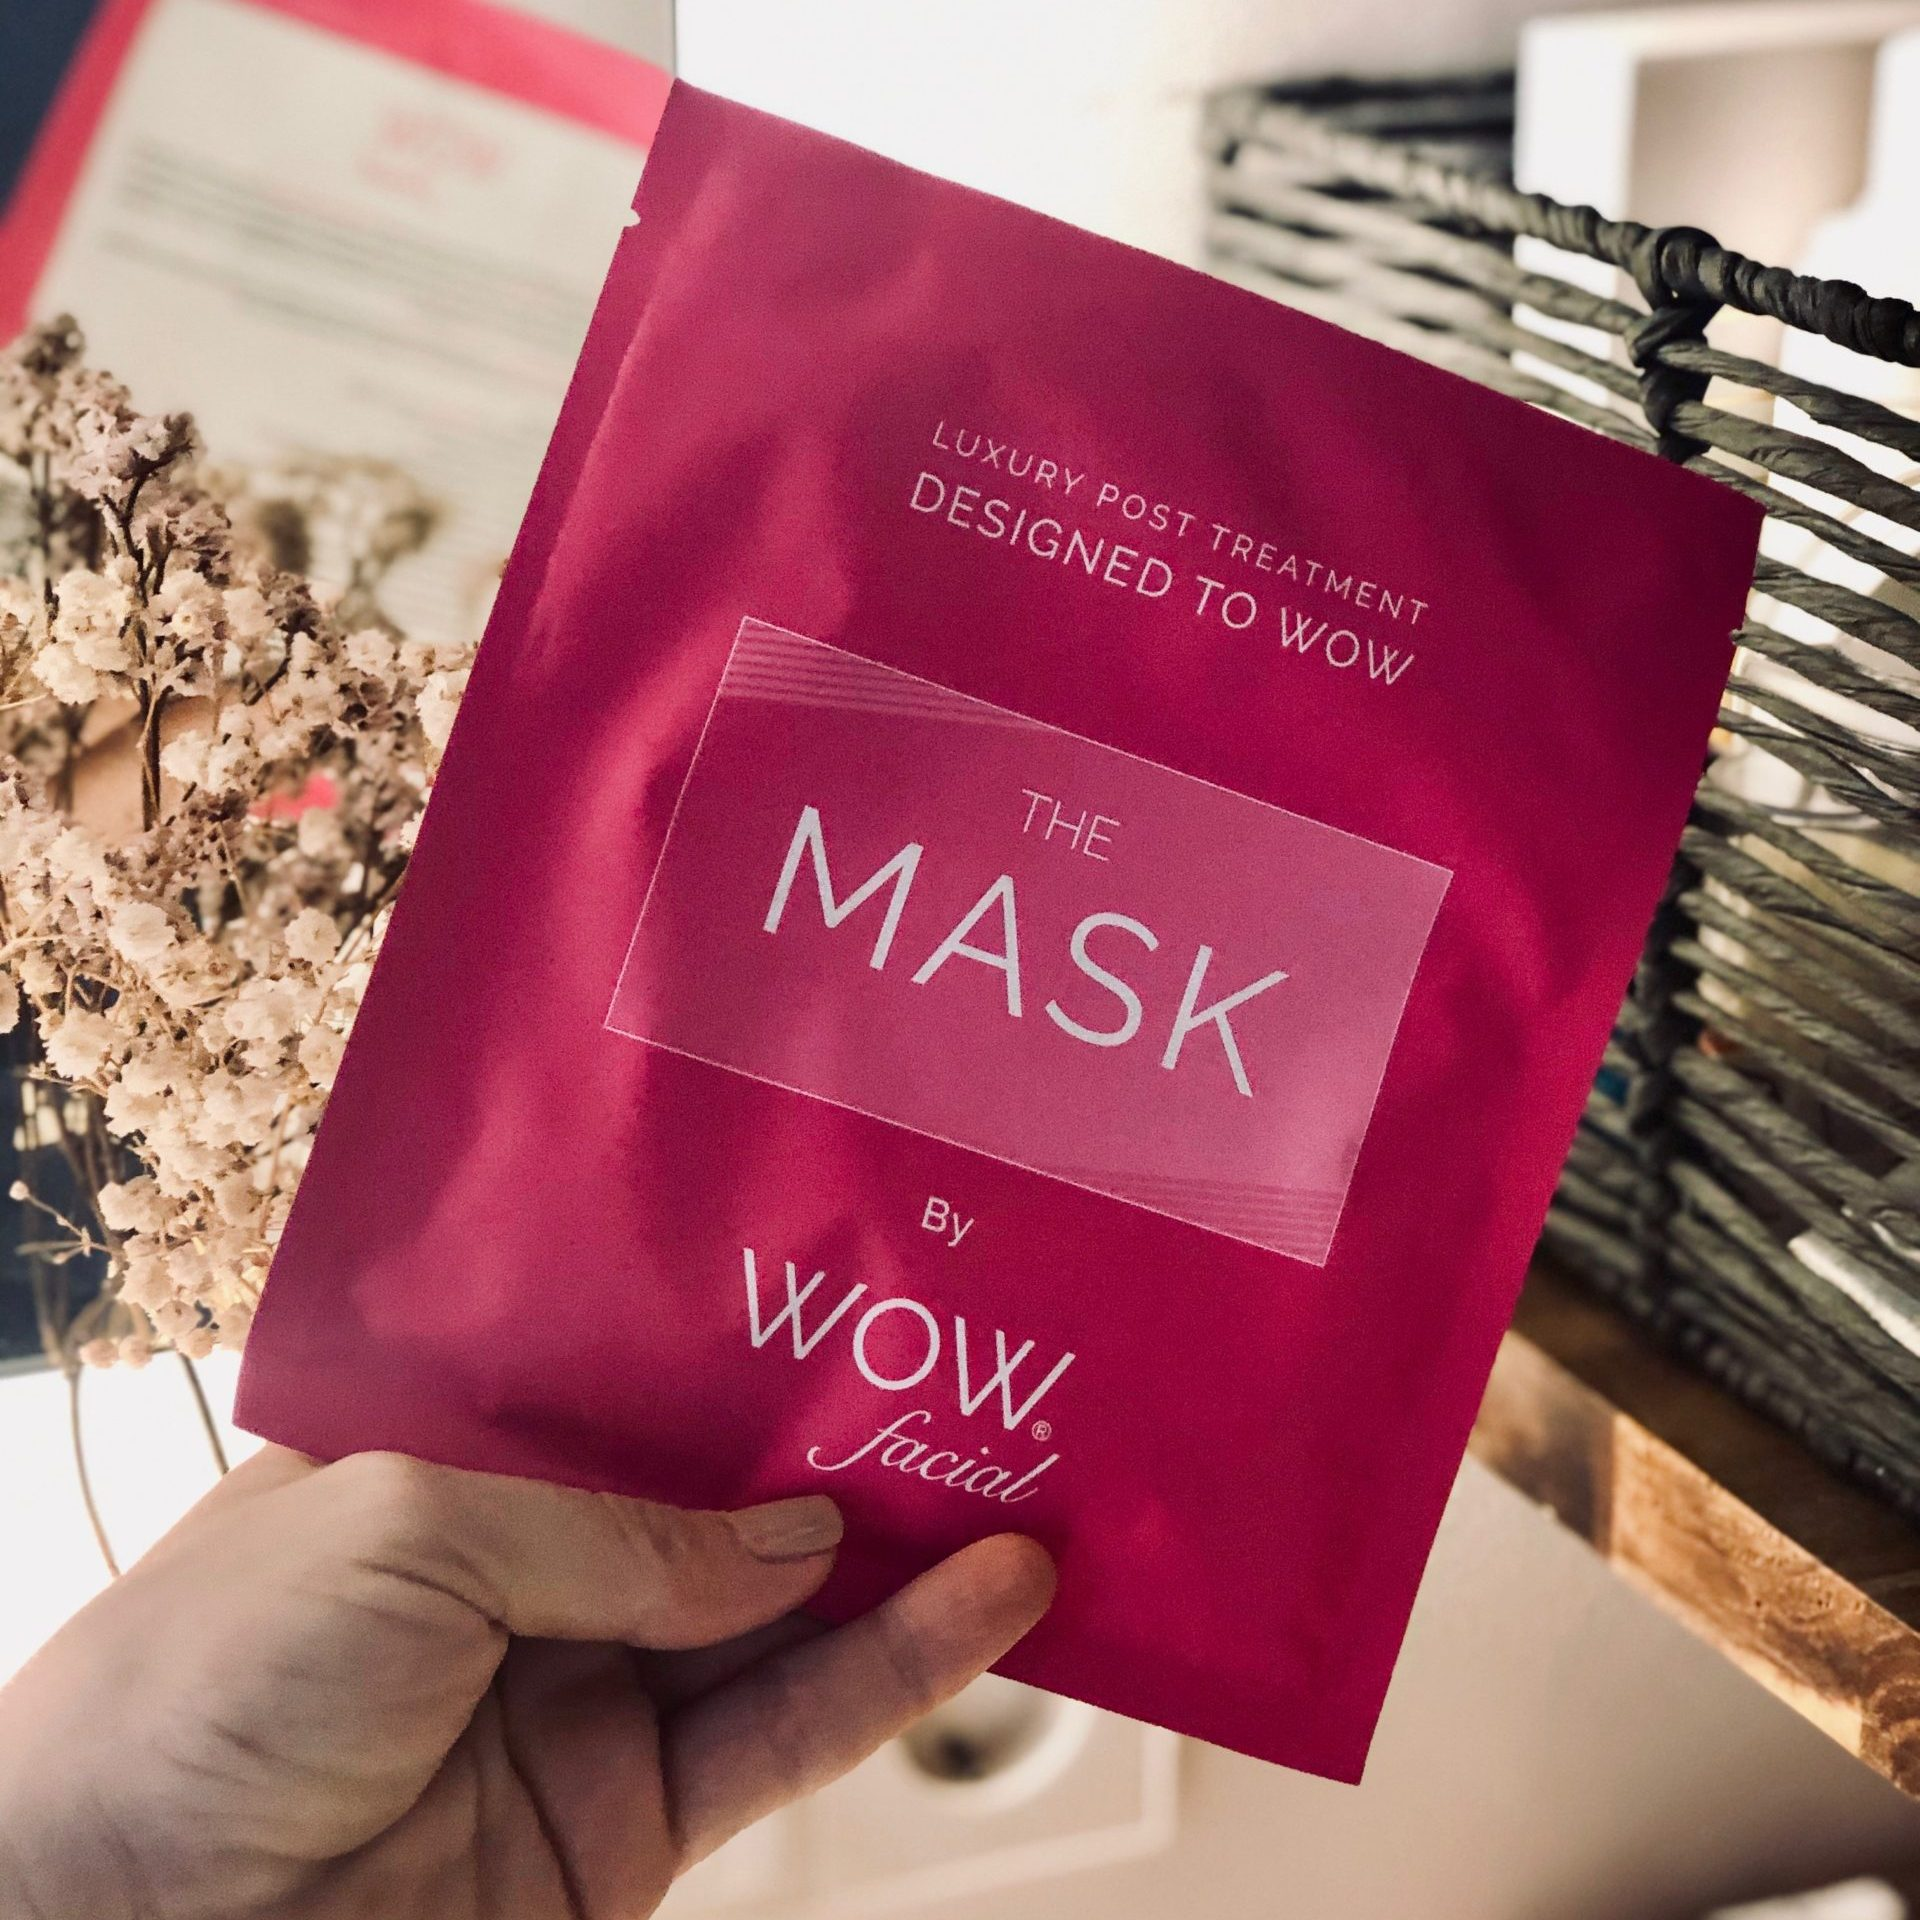 The Mask by WOW facial